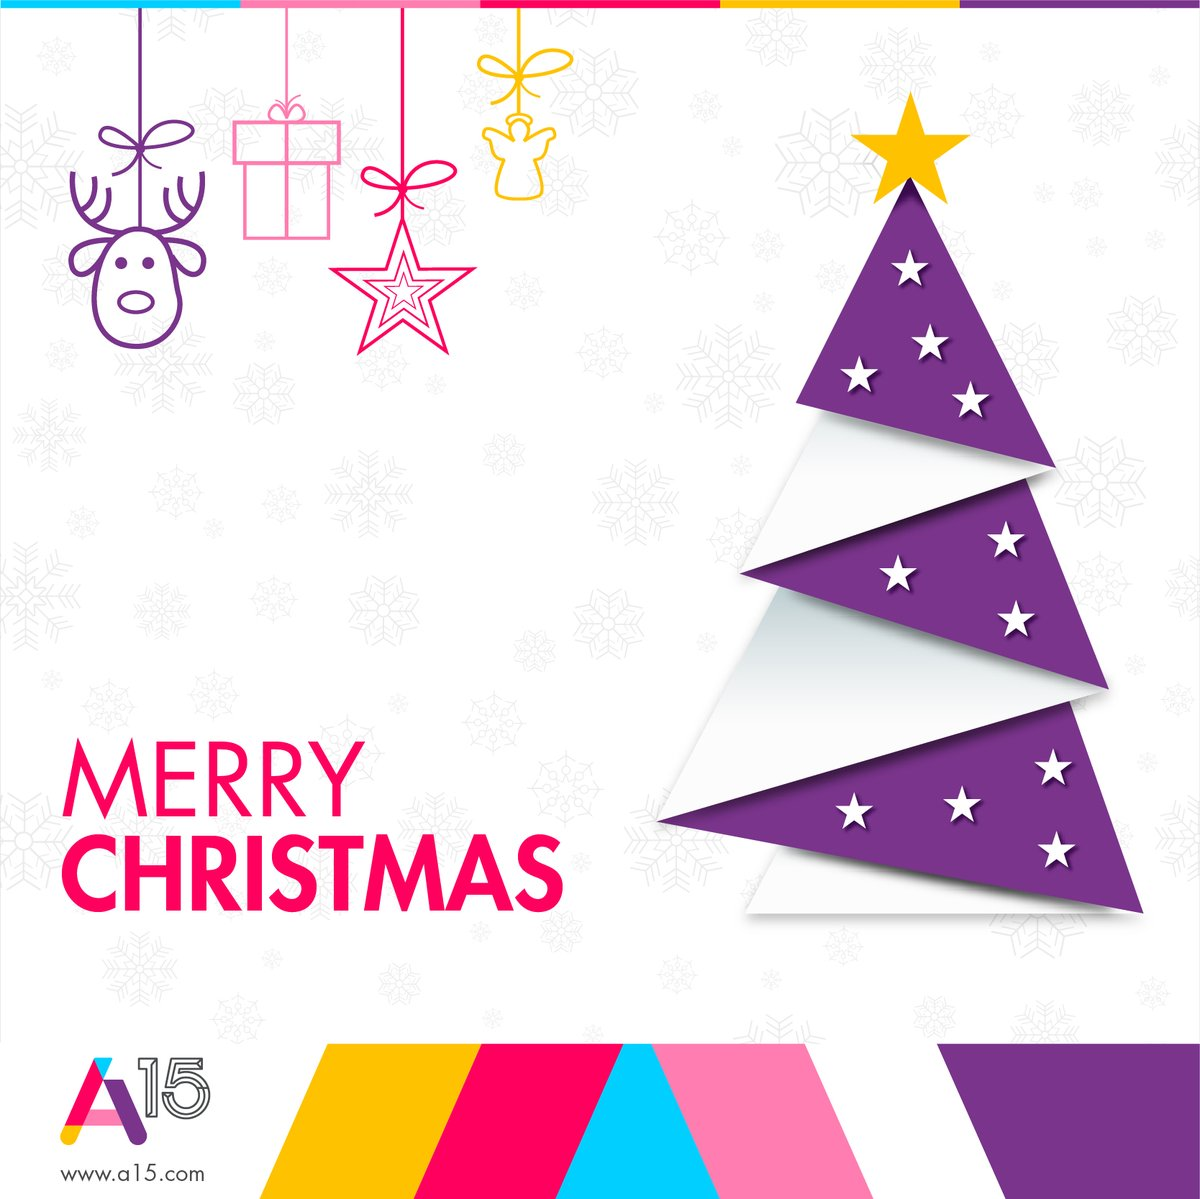 #A15_Family is wishing you a blessed and merry Christmas !! https://t.co/LTOlSarCHt